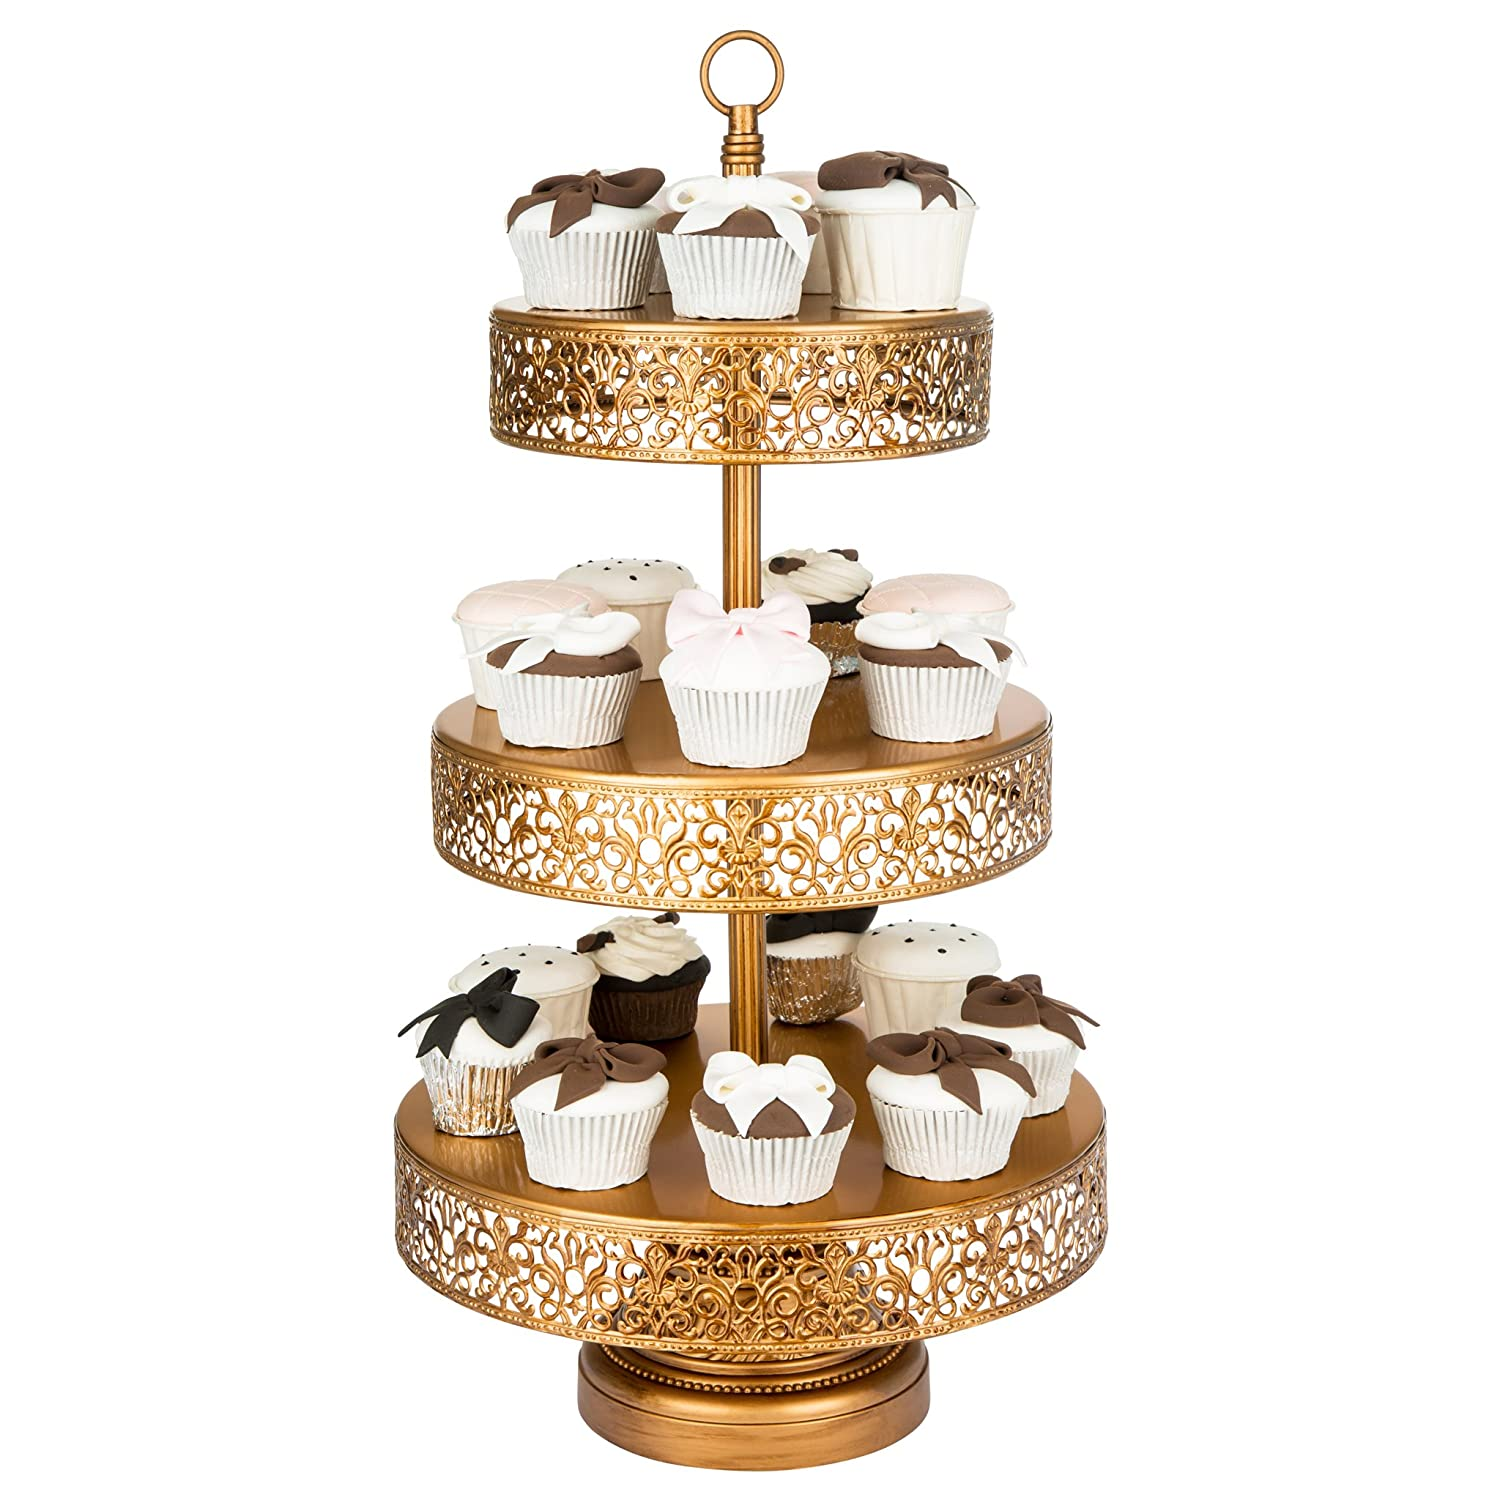 victoria collection antique gold 3 tier cupcake stand